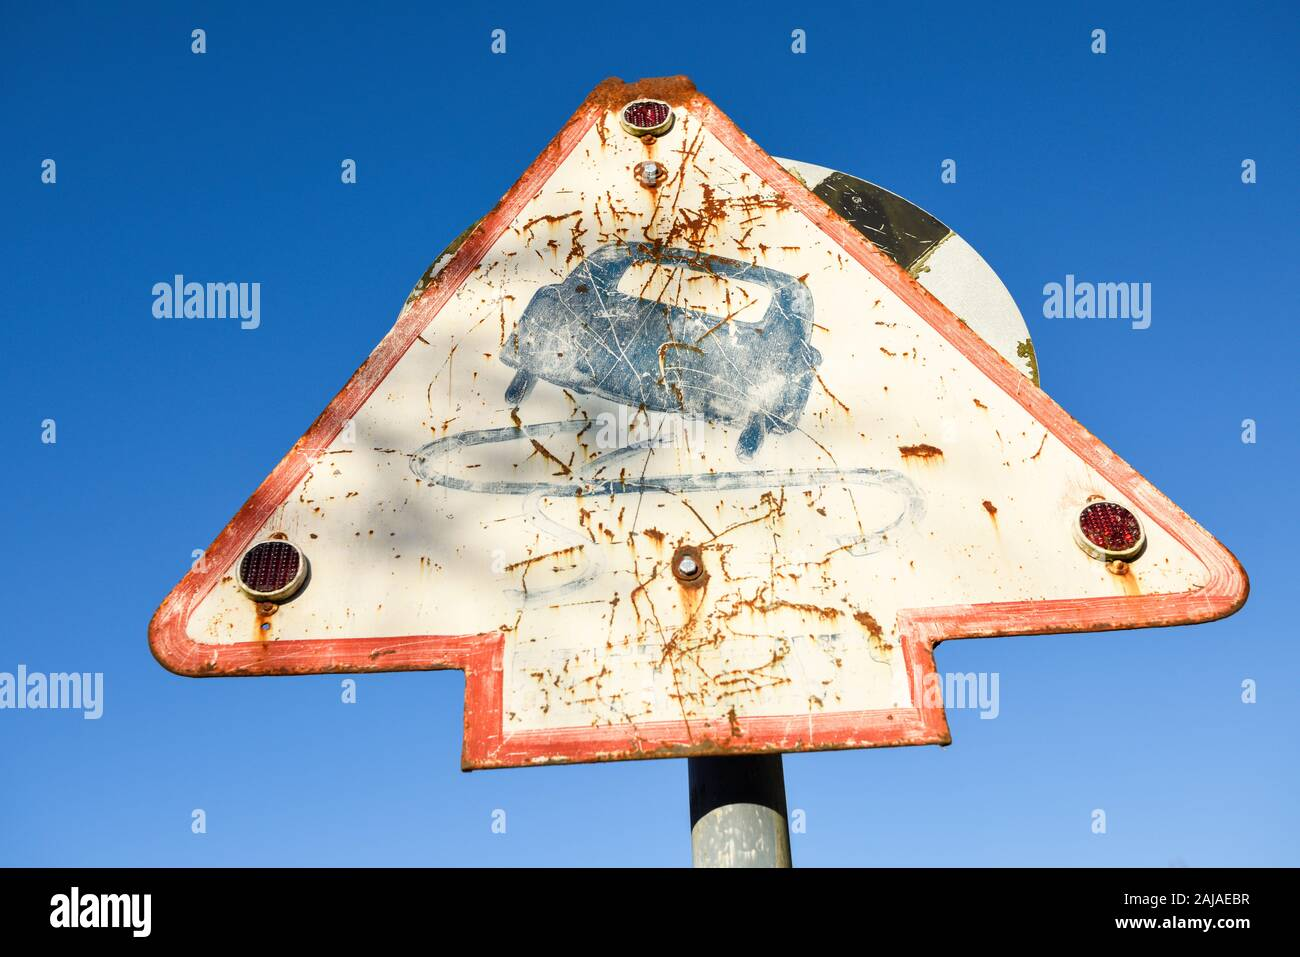 Vintage Traffic Road Signs Triangular Warning Sign Slippery Surface. Stock Photo